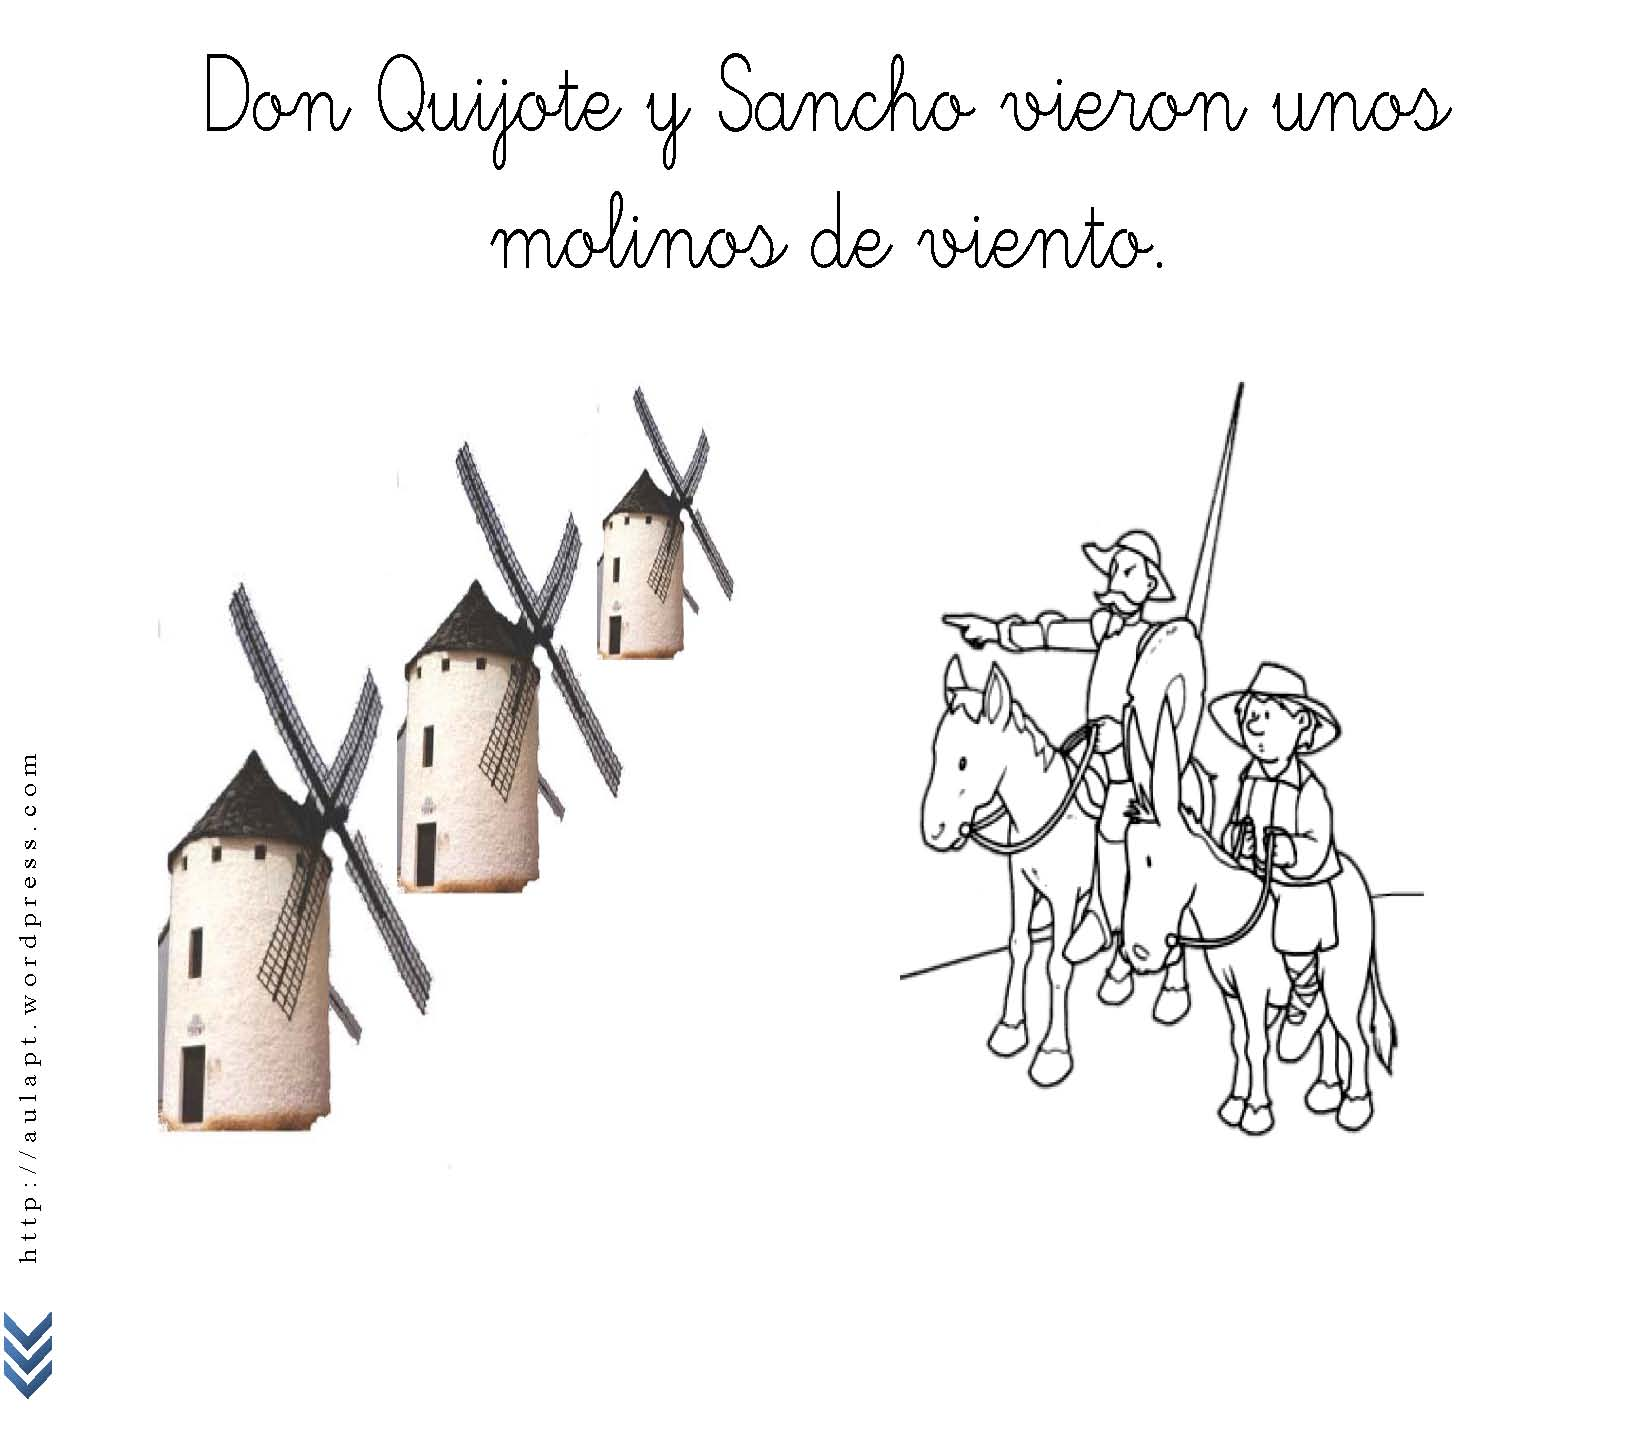 https://aulapt.files.wordpress.com/2009/08/don-quijote-y-los-molinos_page_22.jpg